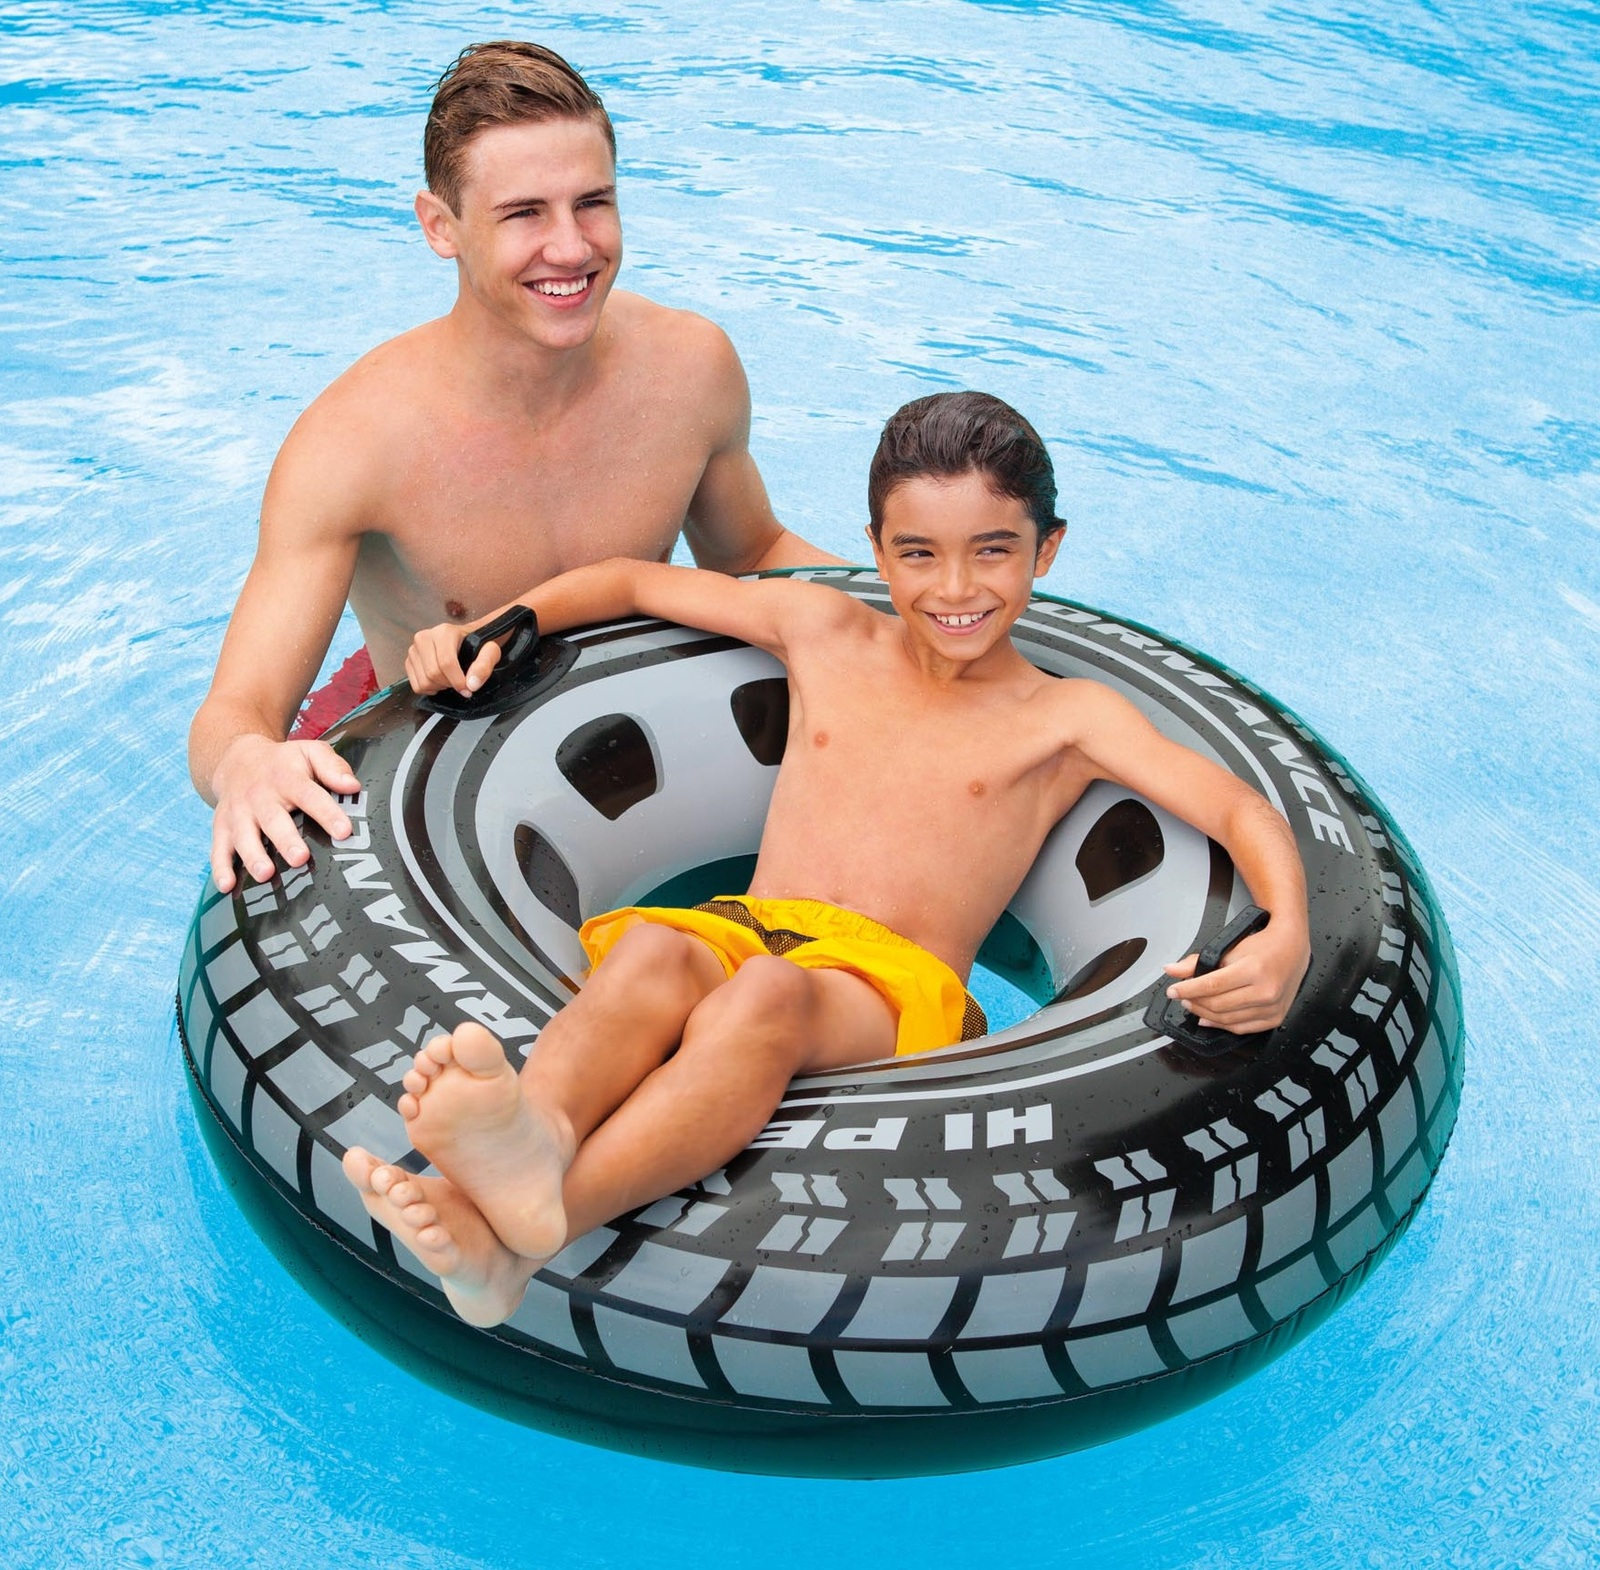 Intex monster truck pool tube toy at mighty ape australia for Intex swimming pools australia